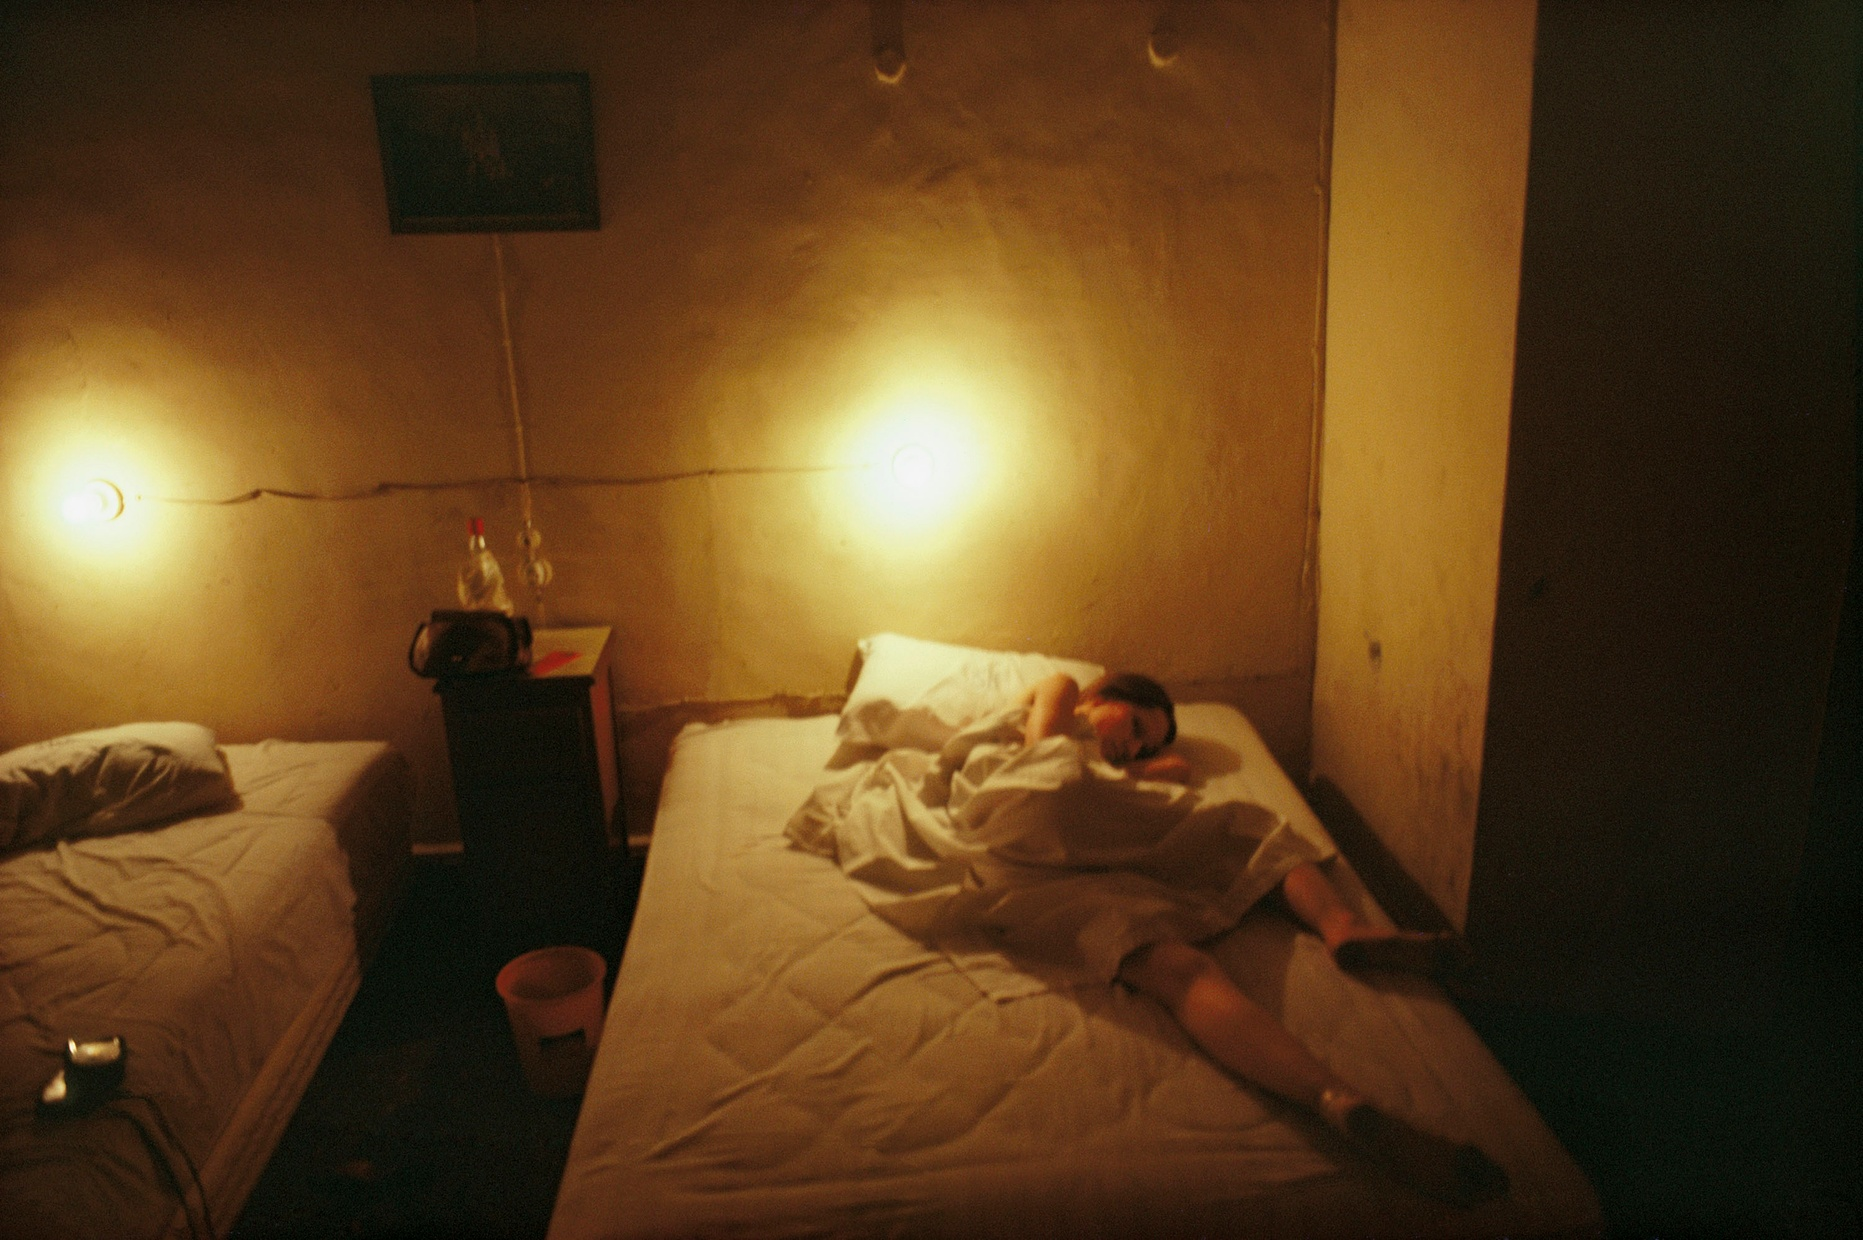 Color photograph of a girl curled up under a sheet on one of two beds in a spare and run down room where there is a bucket on the floor between the beds and bare light bulbs illuminating the space.